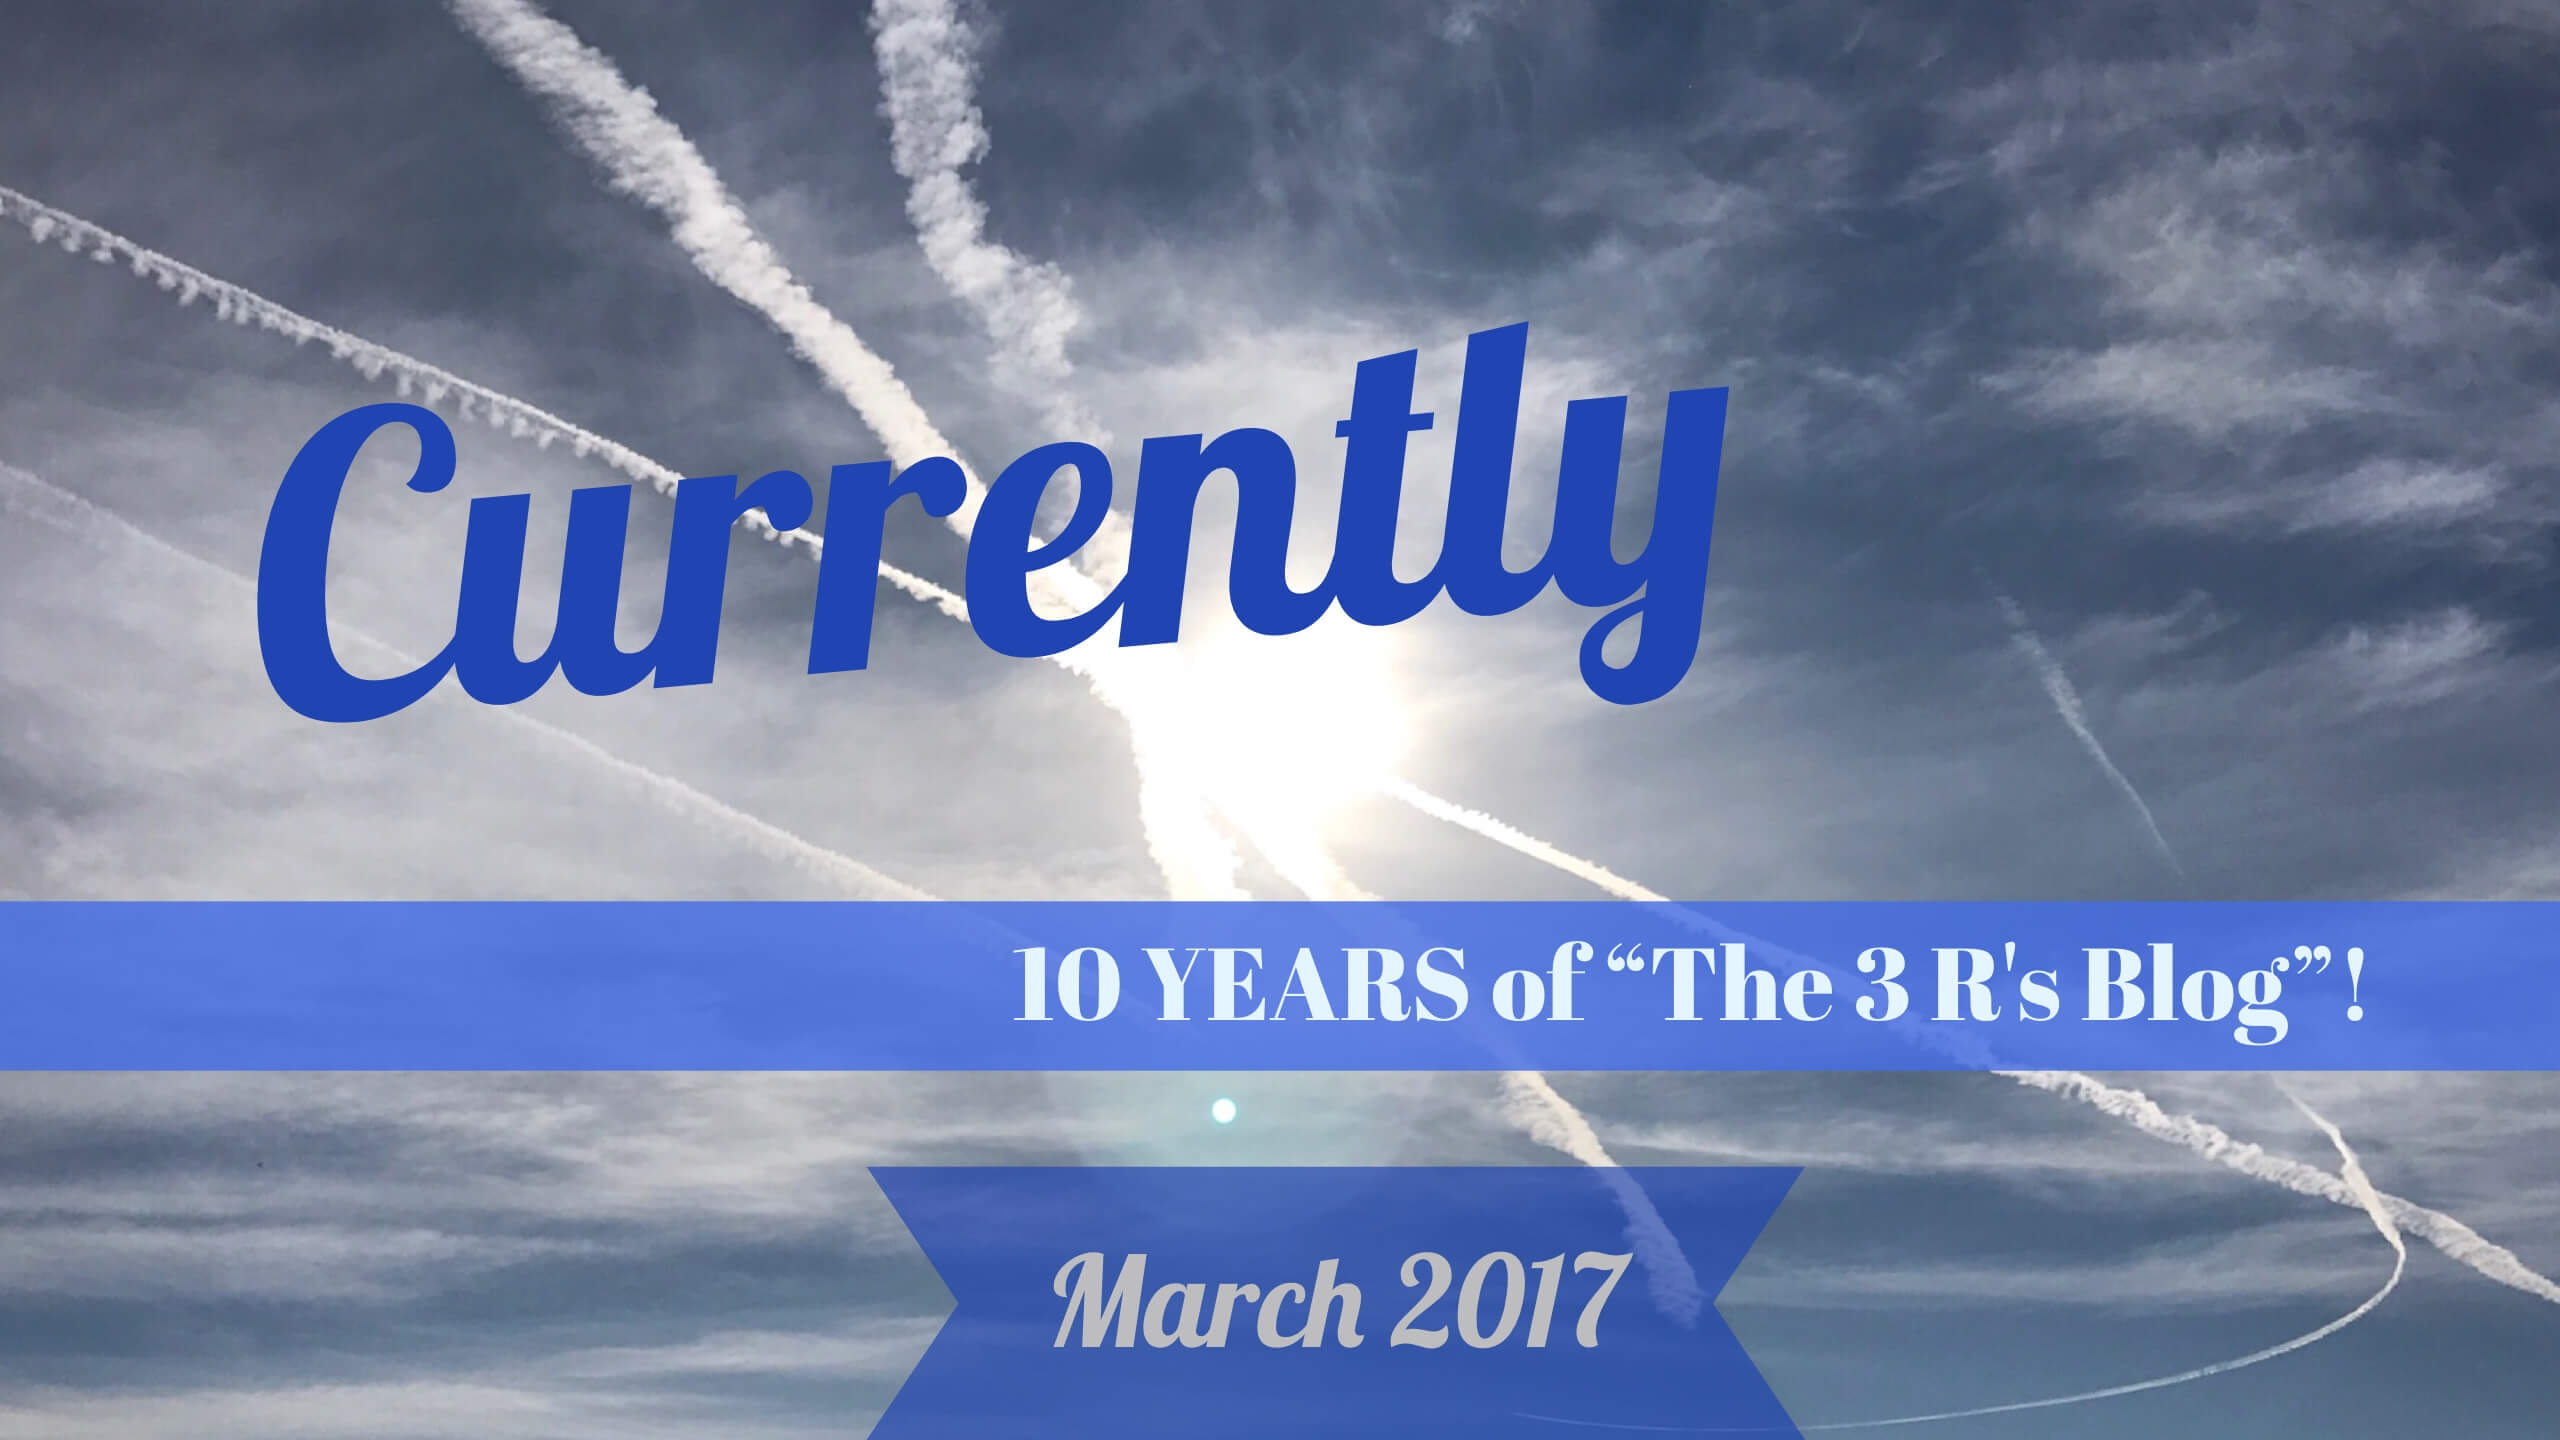 10 YEARS of The 3 Rs Blog! [Currently] #Blogiversary